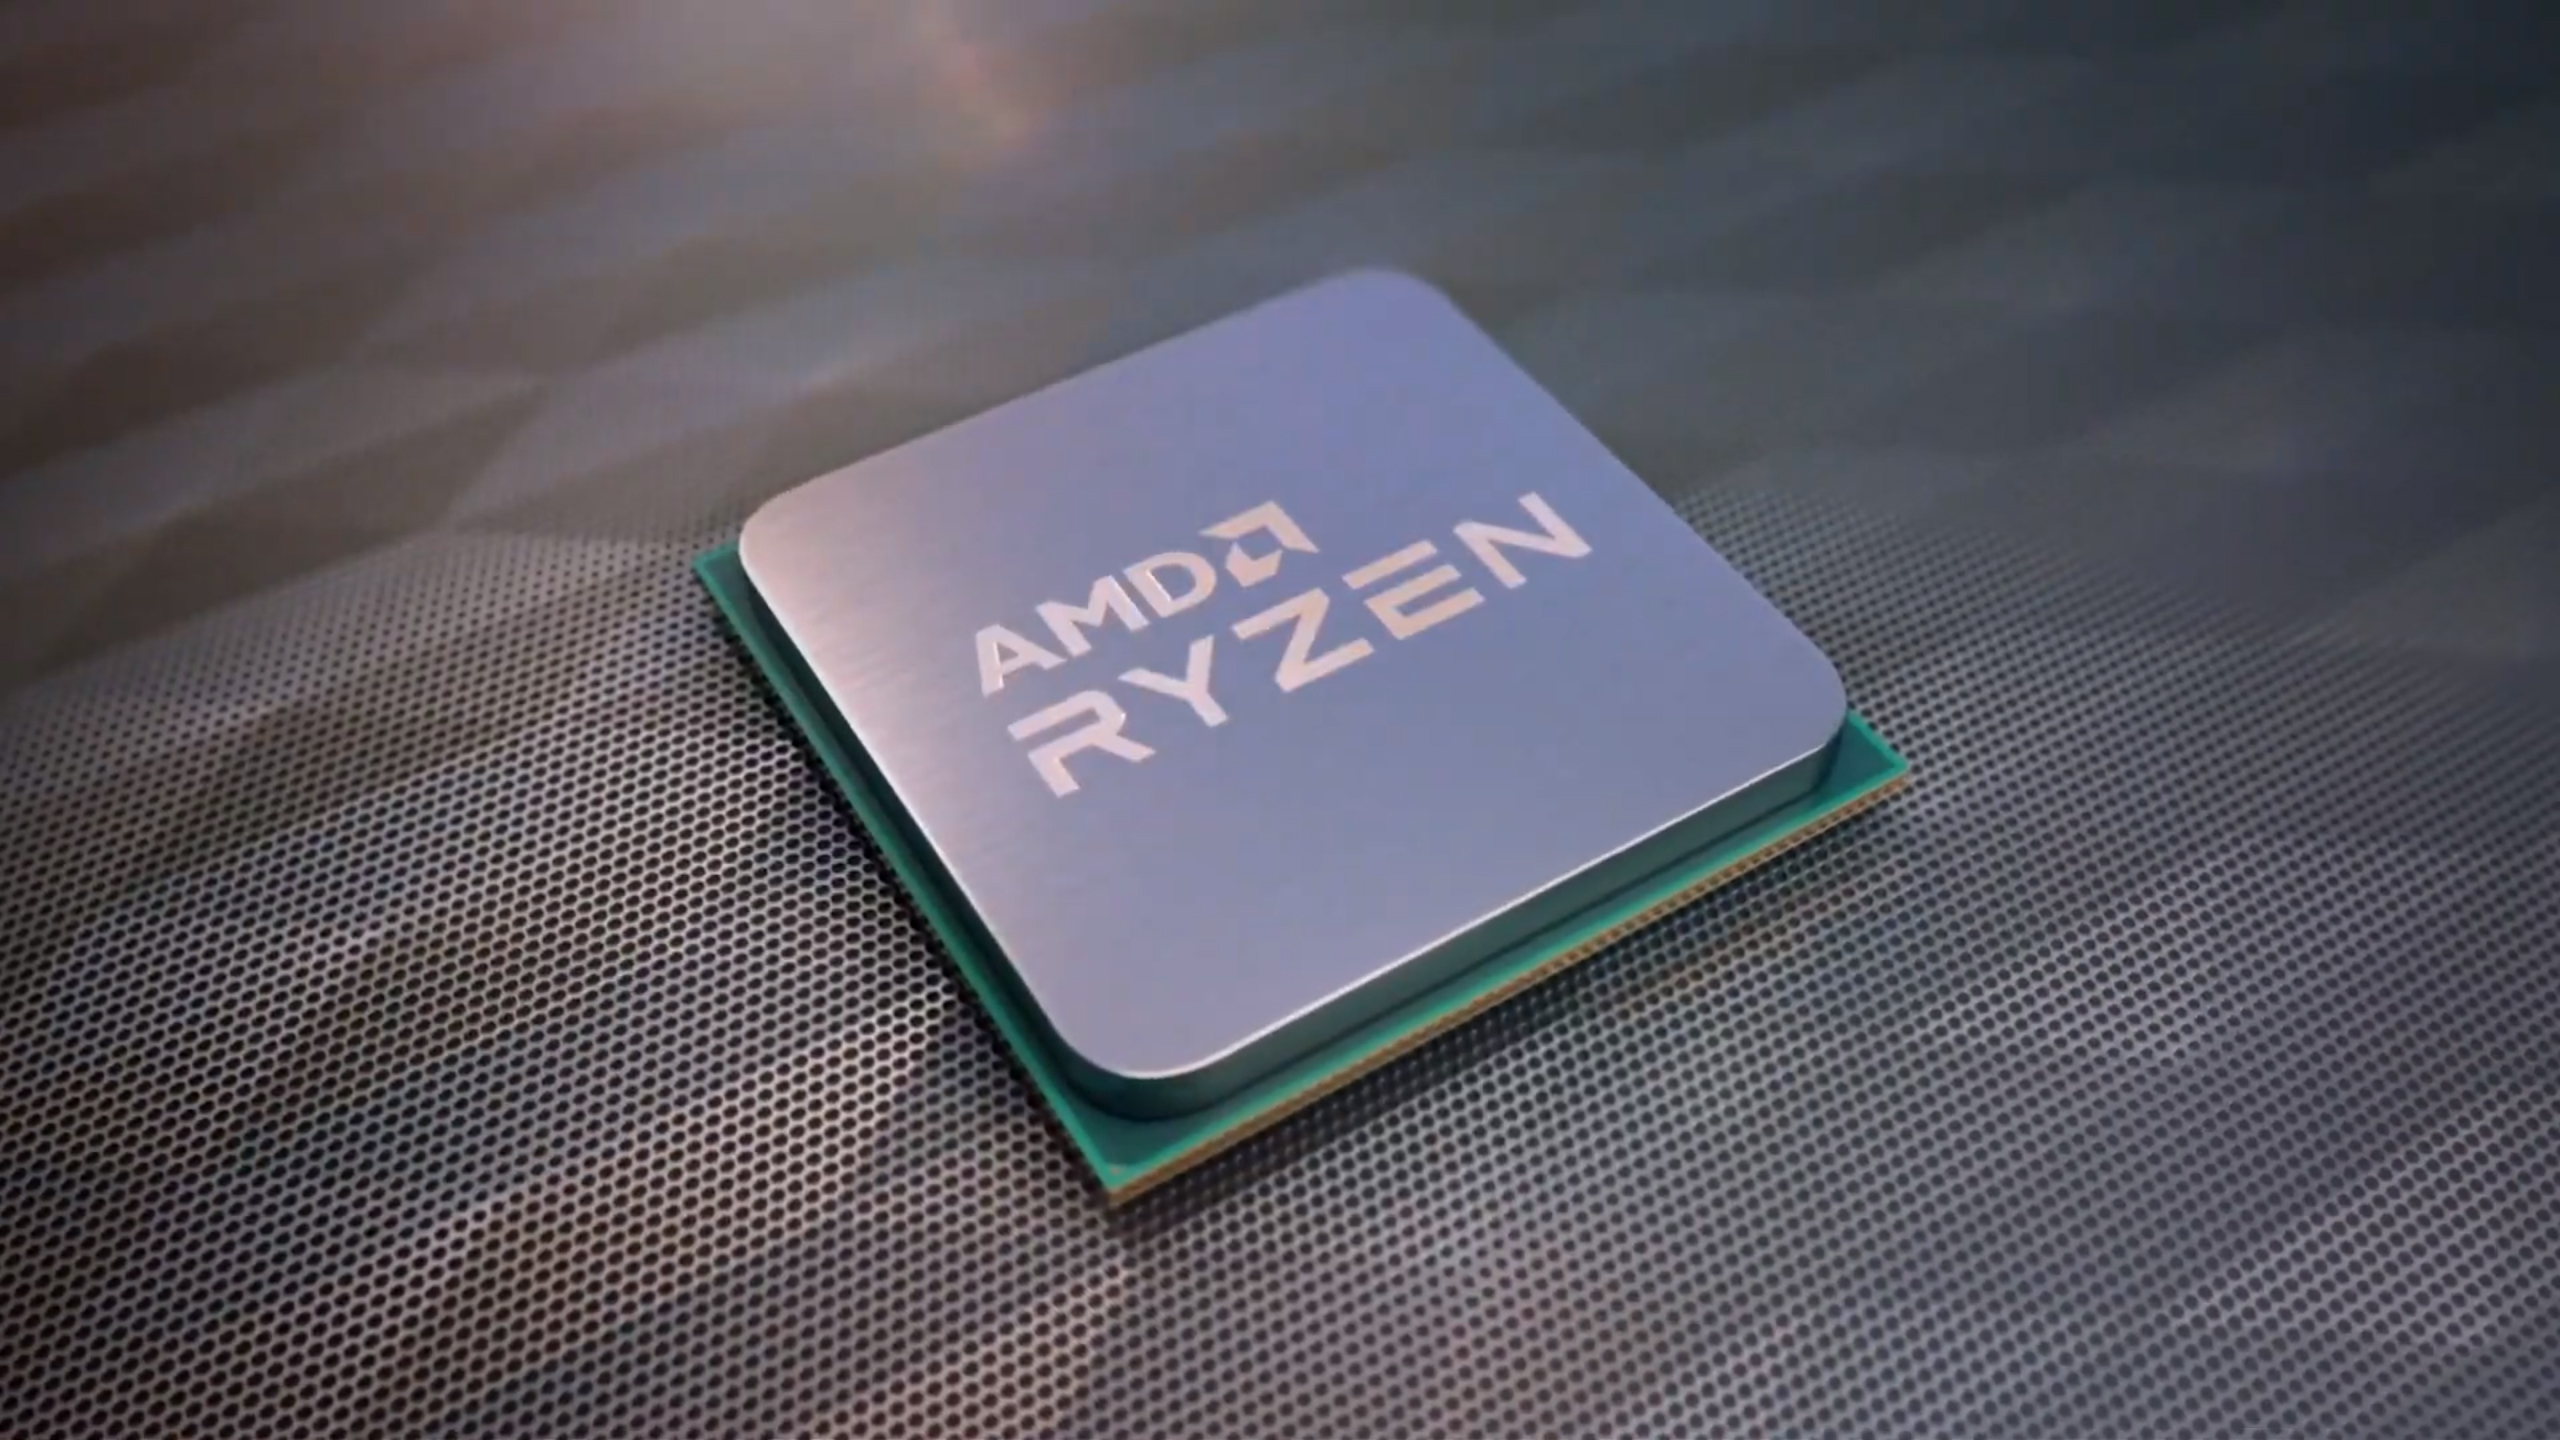 amd-ryzen-5700g-could-let-you-build-a-console-like-gaming-pc-without-needing-a-gpu